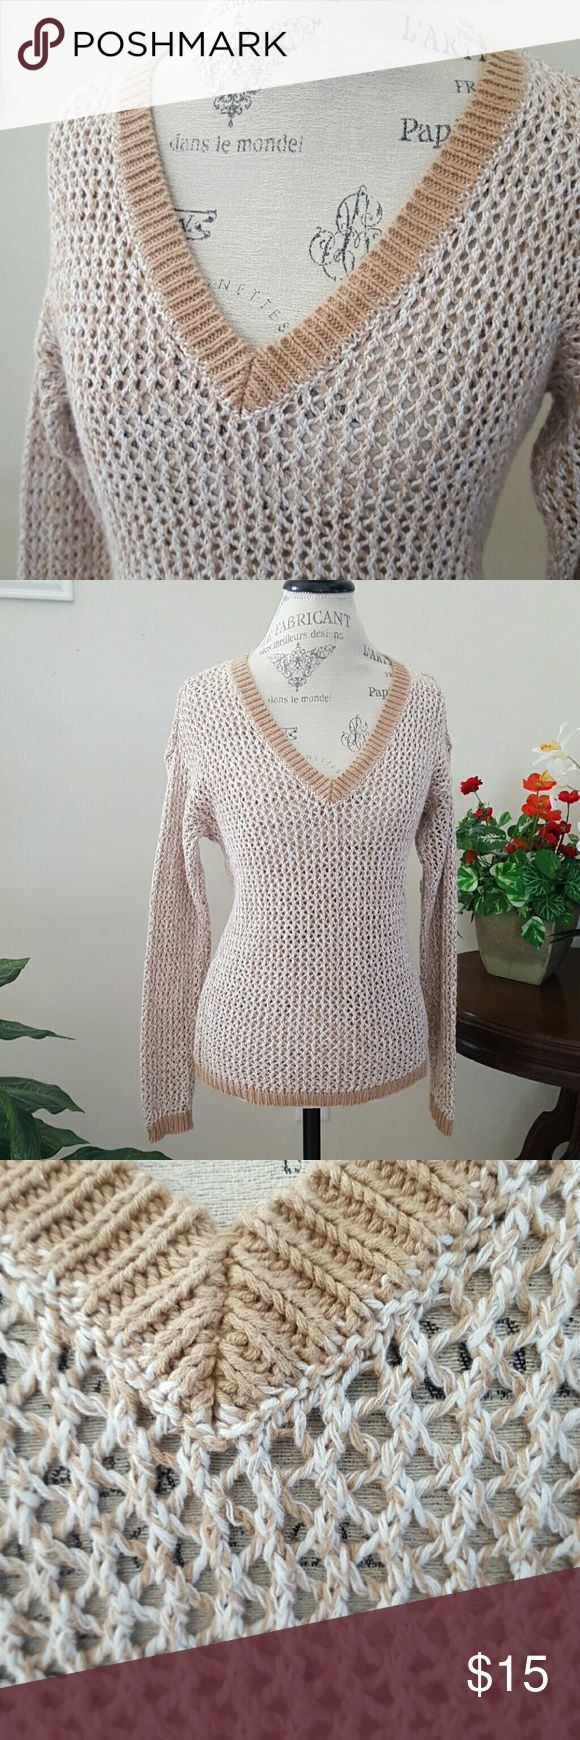 Tommy Hilfiger Open Weave Linen/Cotton Open weave sweater is a linen/ cotton blend that is  breathable and cool in tan and white.  Slip it on over you favorite bralette or bandeau with jeans and sandals!  Voila! Tommy Hilfiger Sweaters V-Necks